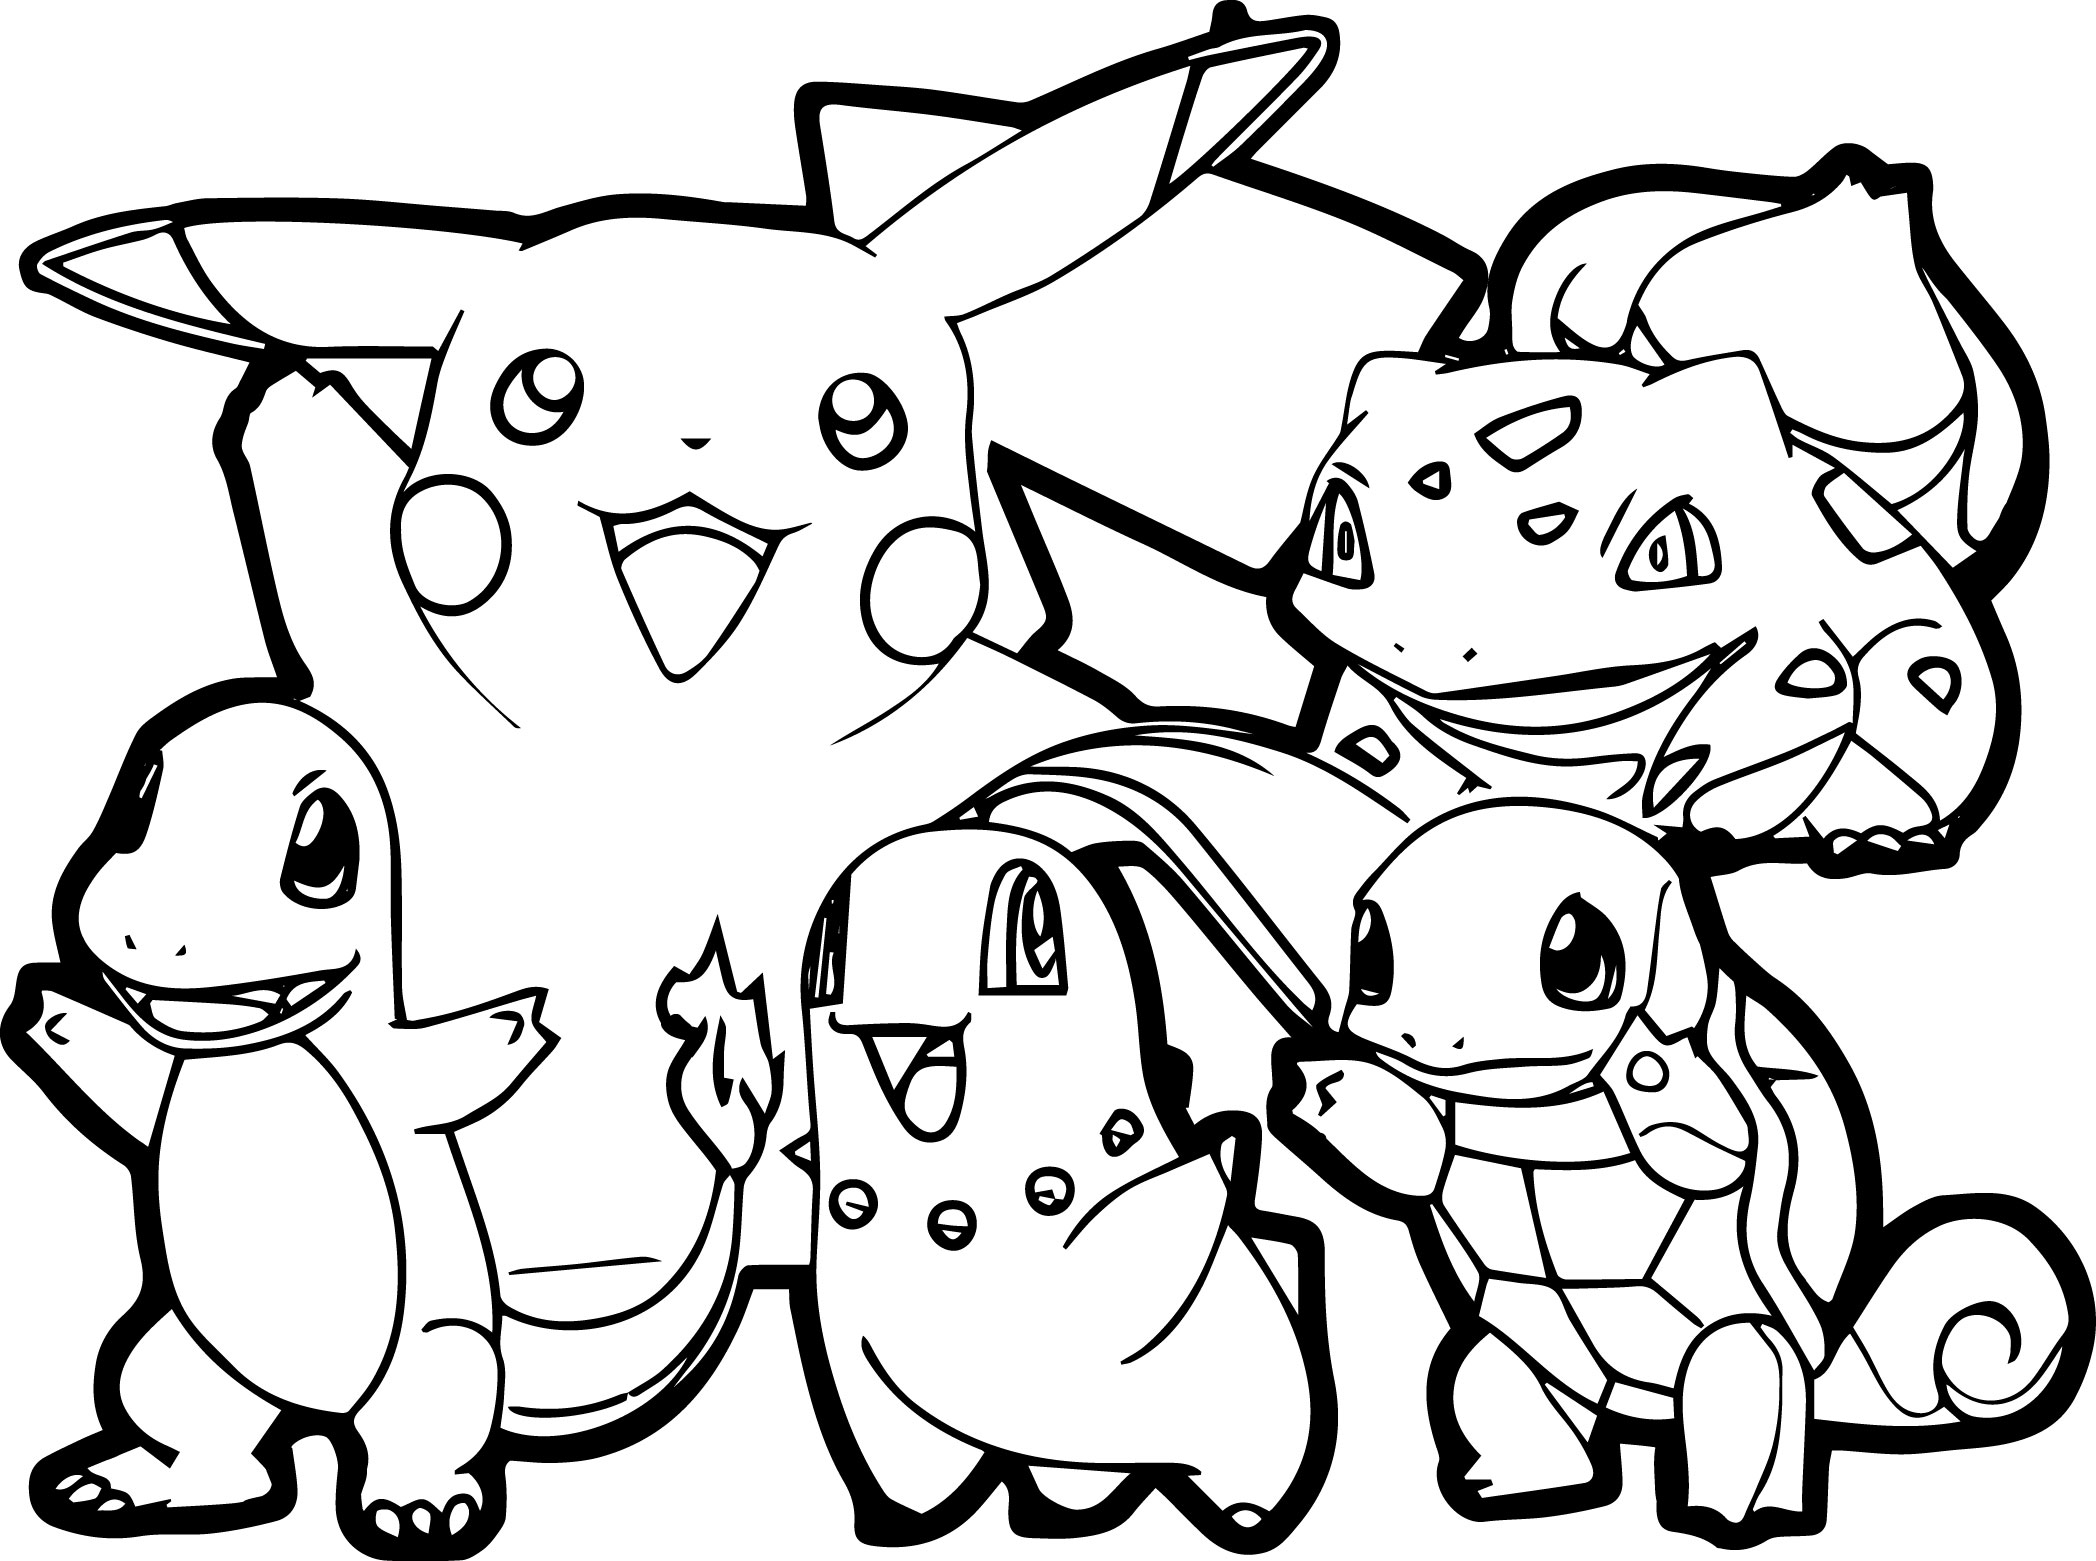 Incredible Pokemon Coloring Page To Print And Color For Free